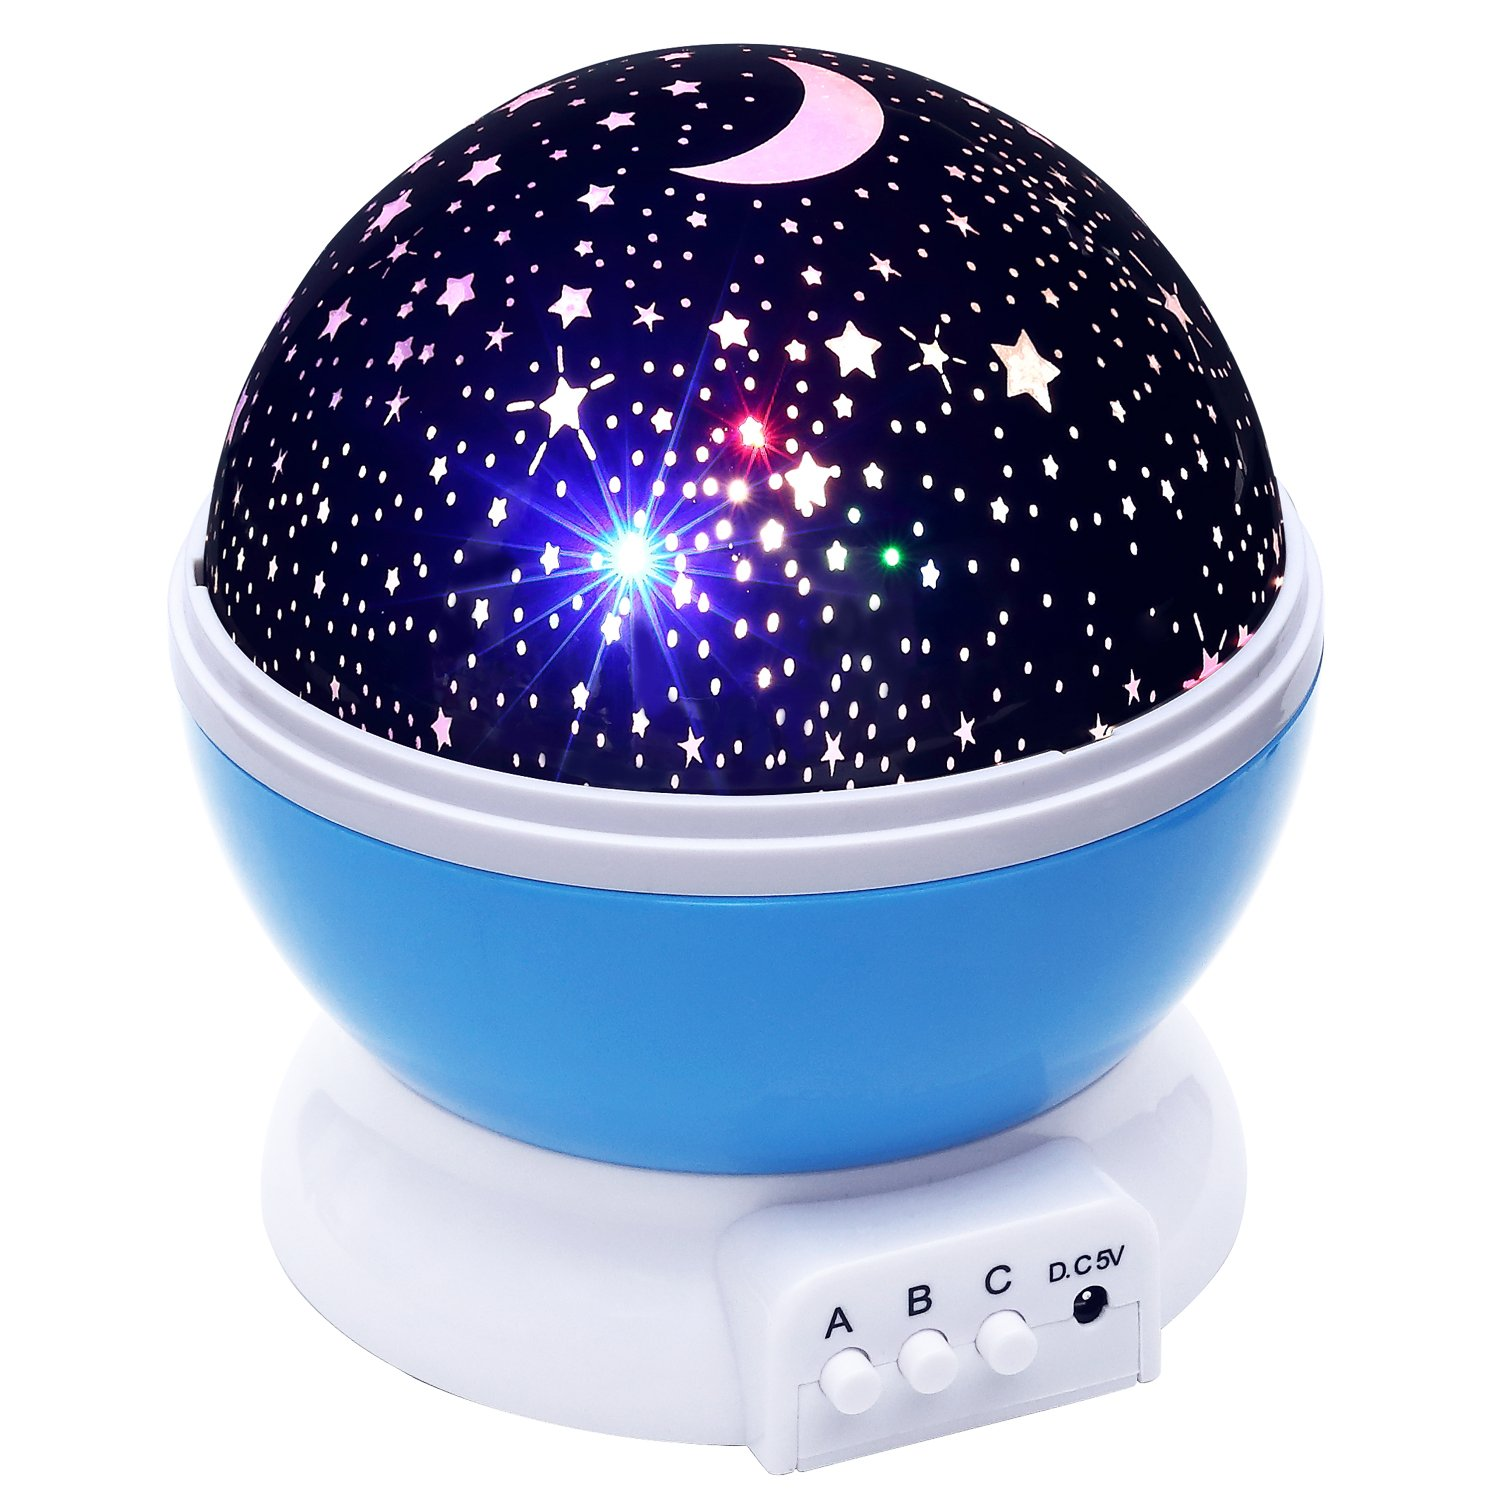 Amazon lizber baby night light moon star projector 360 amazon lizber baby night light moon star projector 360 degree rotation 4 led bulbs 9 light color changing with usb cable unique gifts for men women mozeypictures Image collections